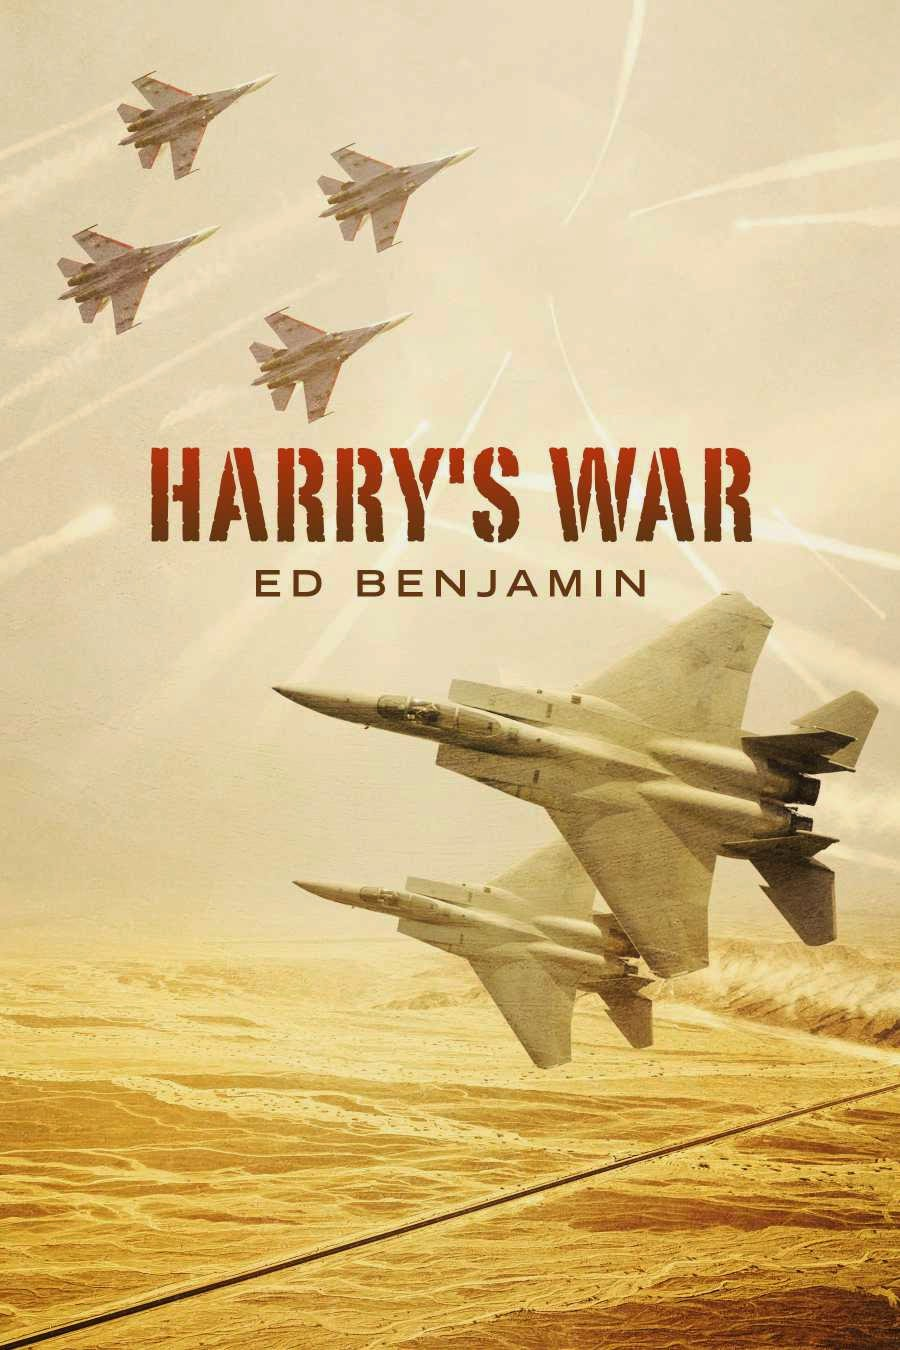 HARRY'S WAR